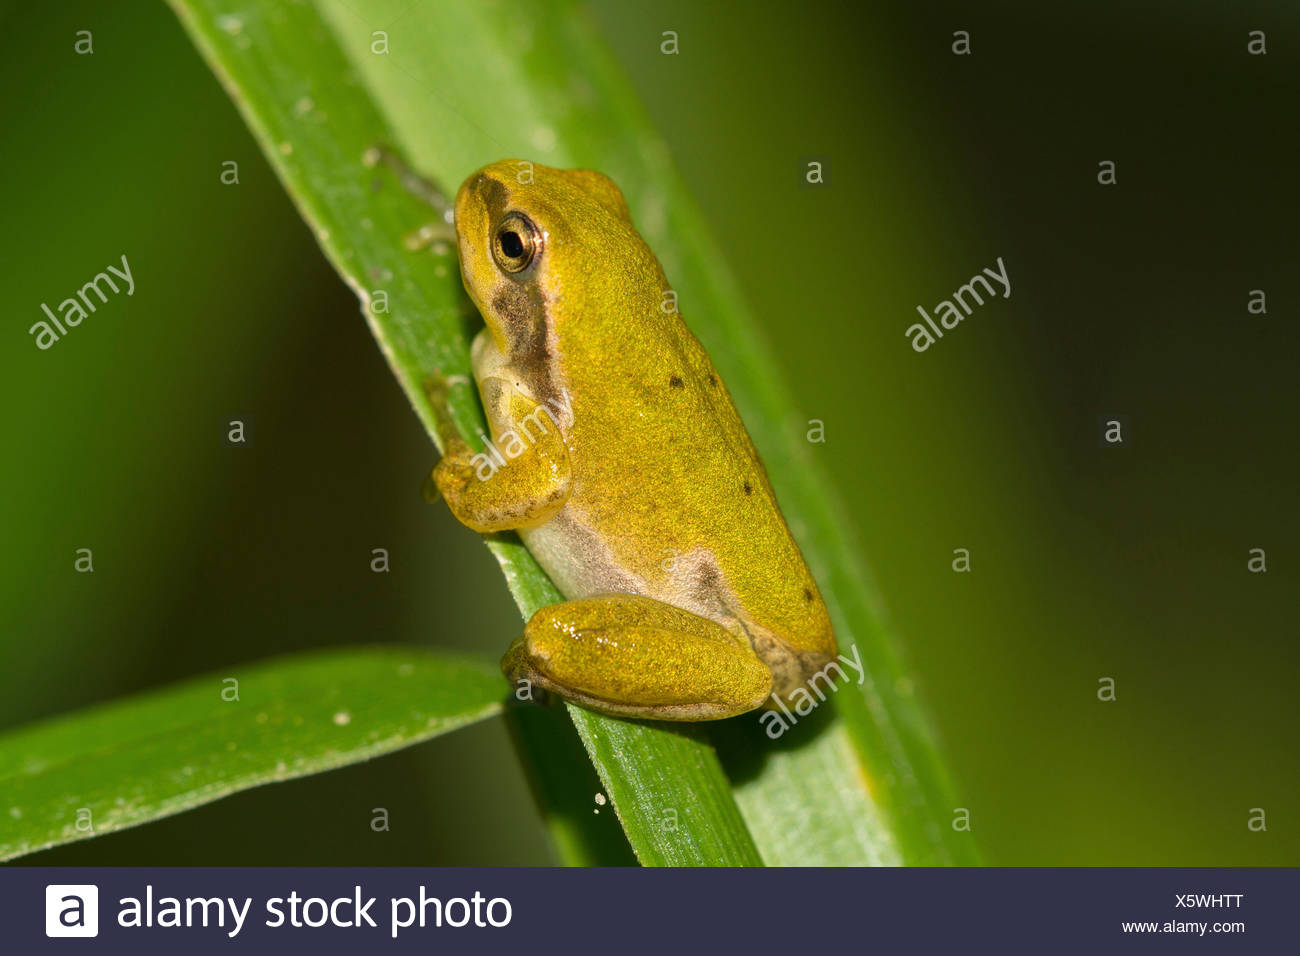 European treefrog, common treefrog, Central European treefrog (Hyla arborea), juvenile, after the end of the metamorphosis, Germany, Bavaria, Isental - Stock Image